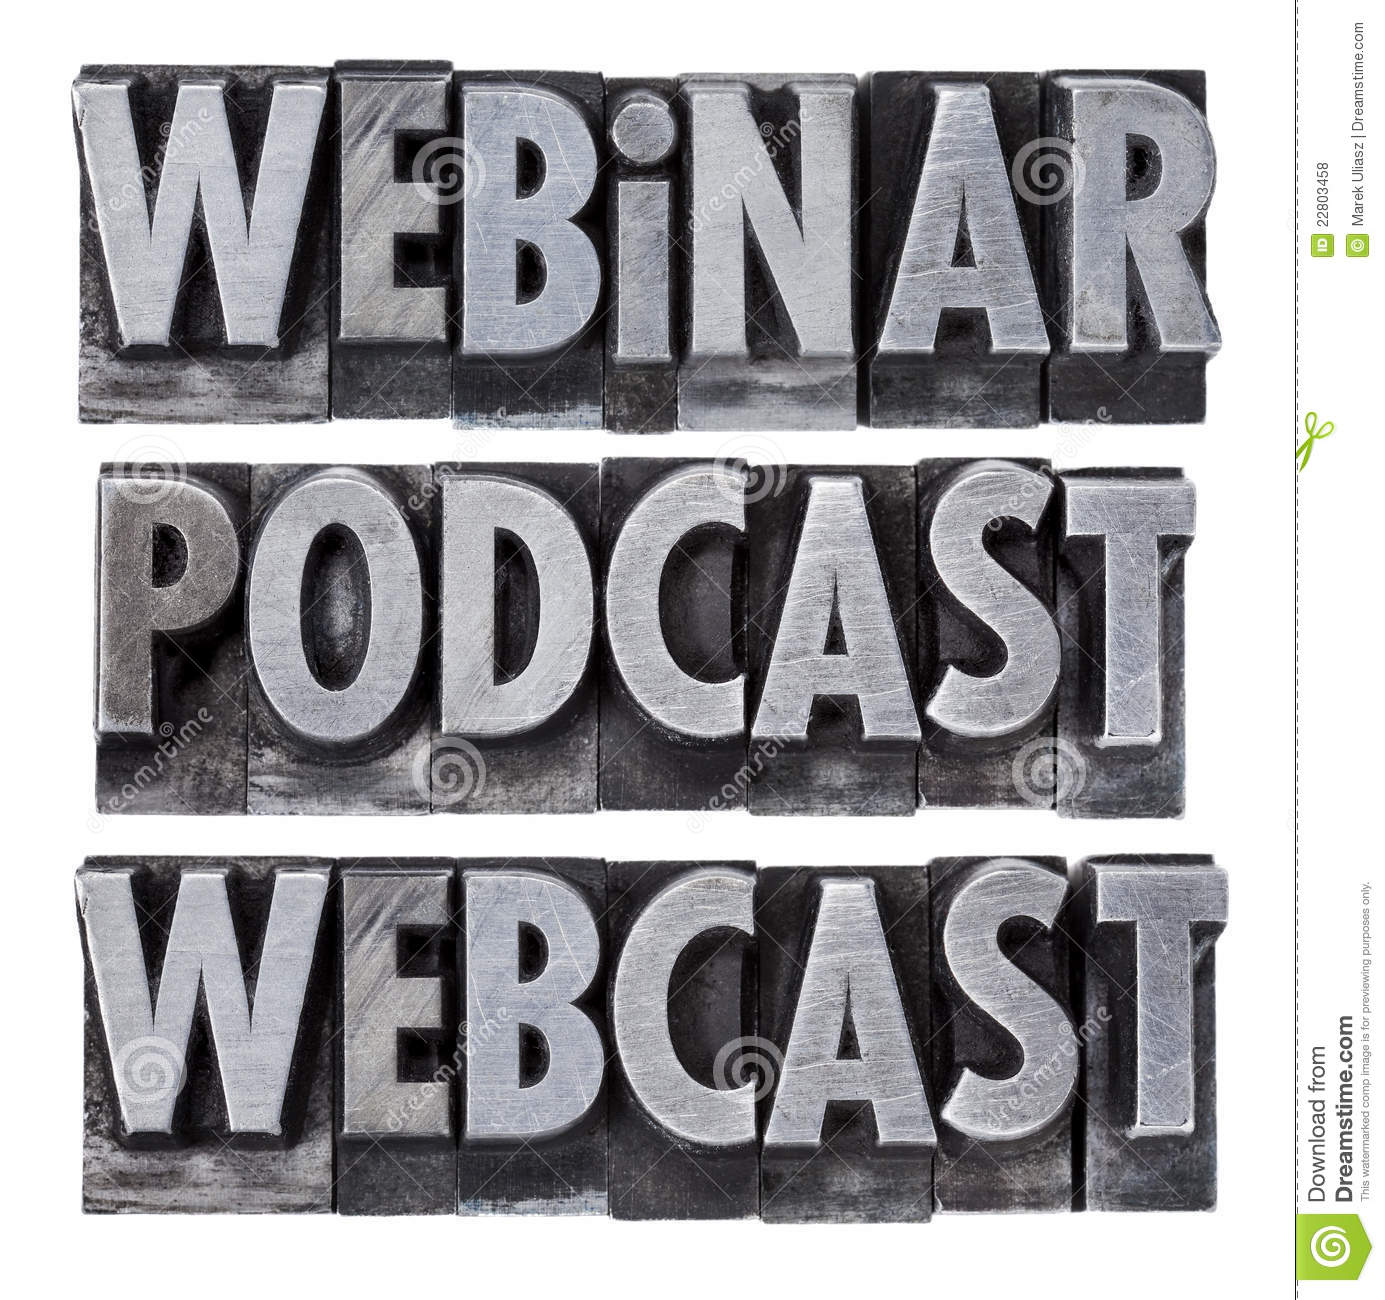 Webinar, podcast and webcast